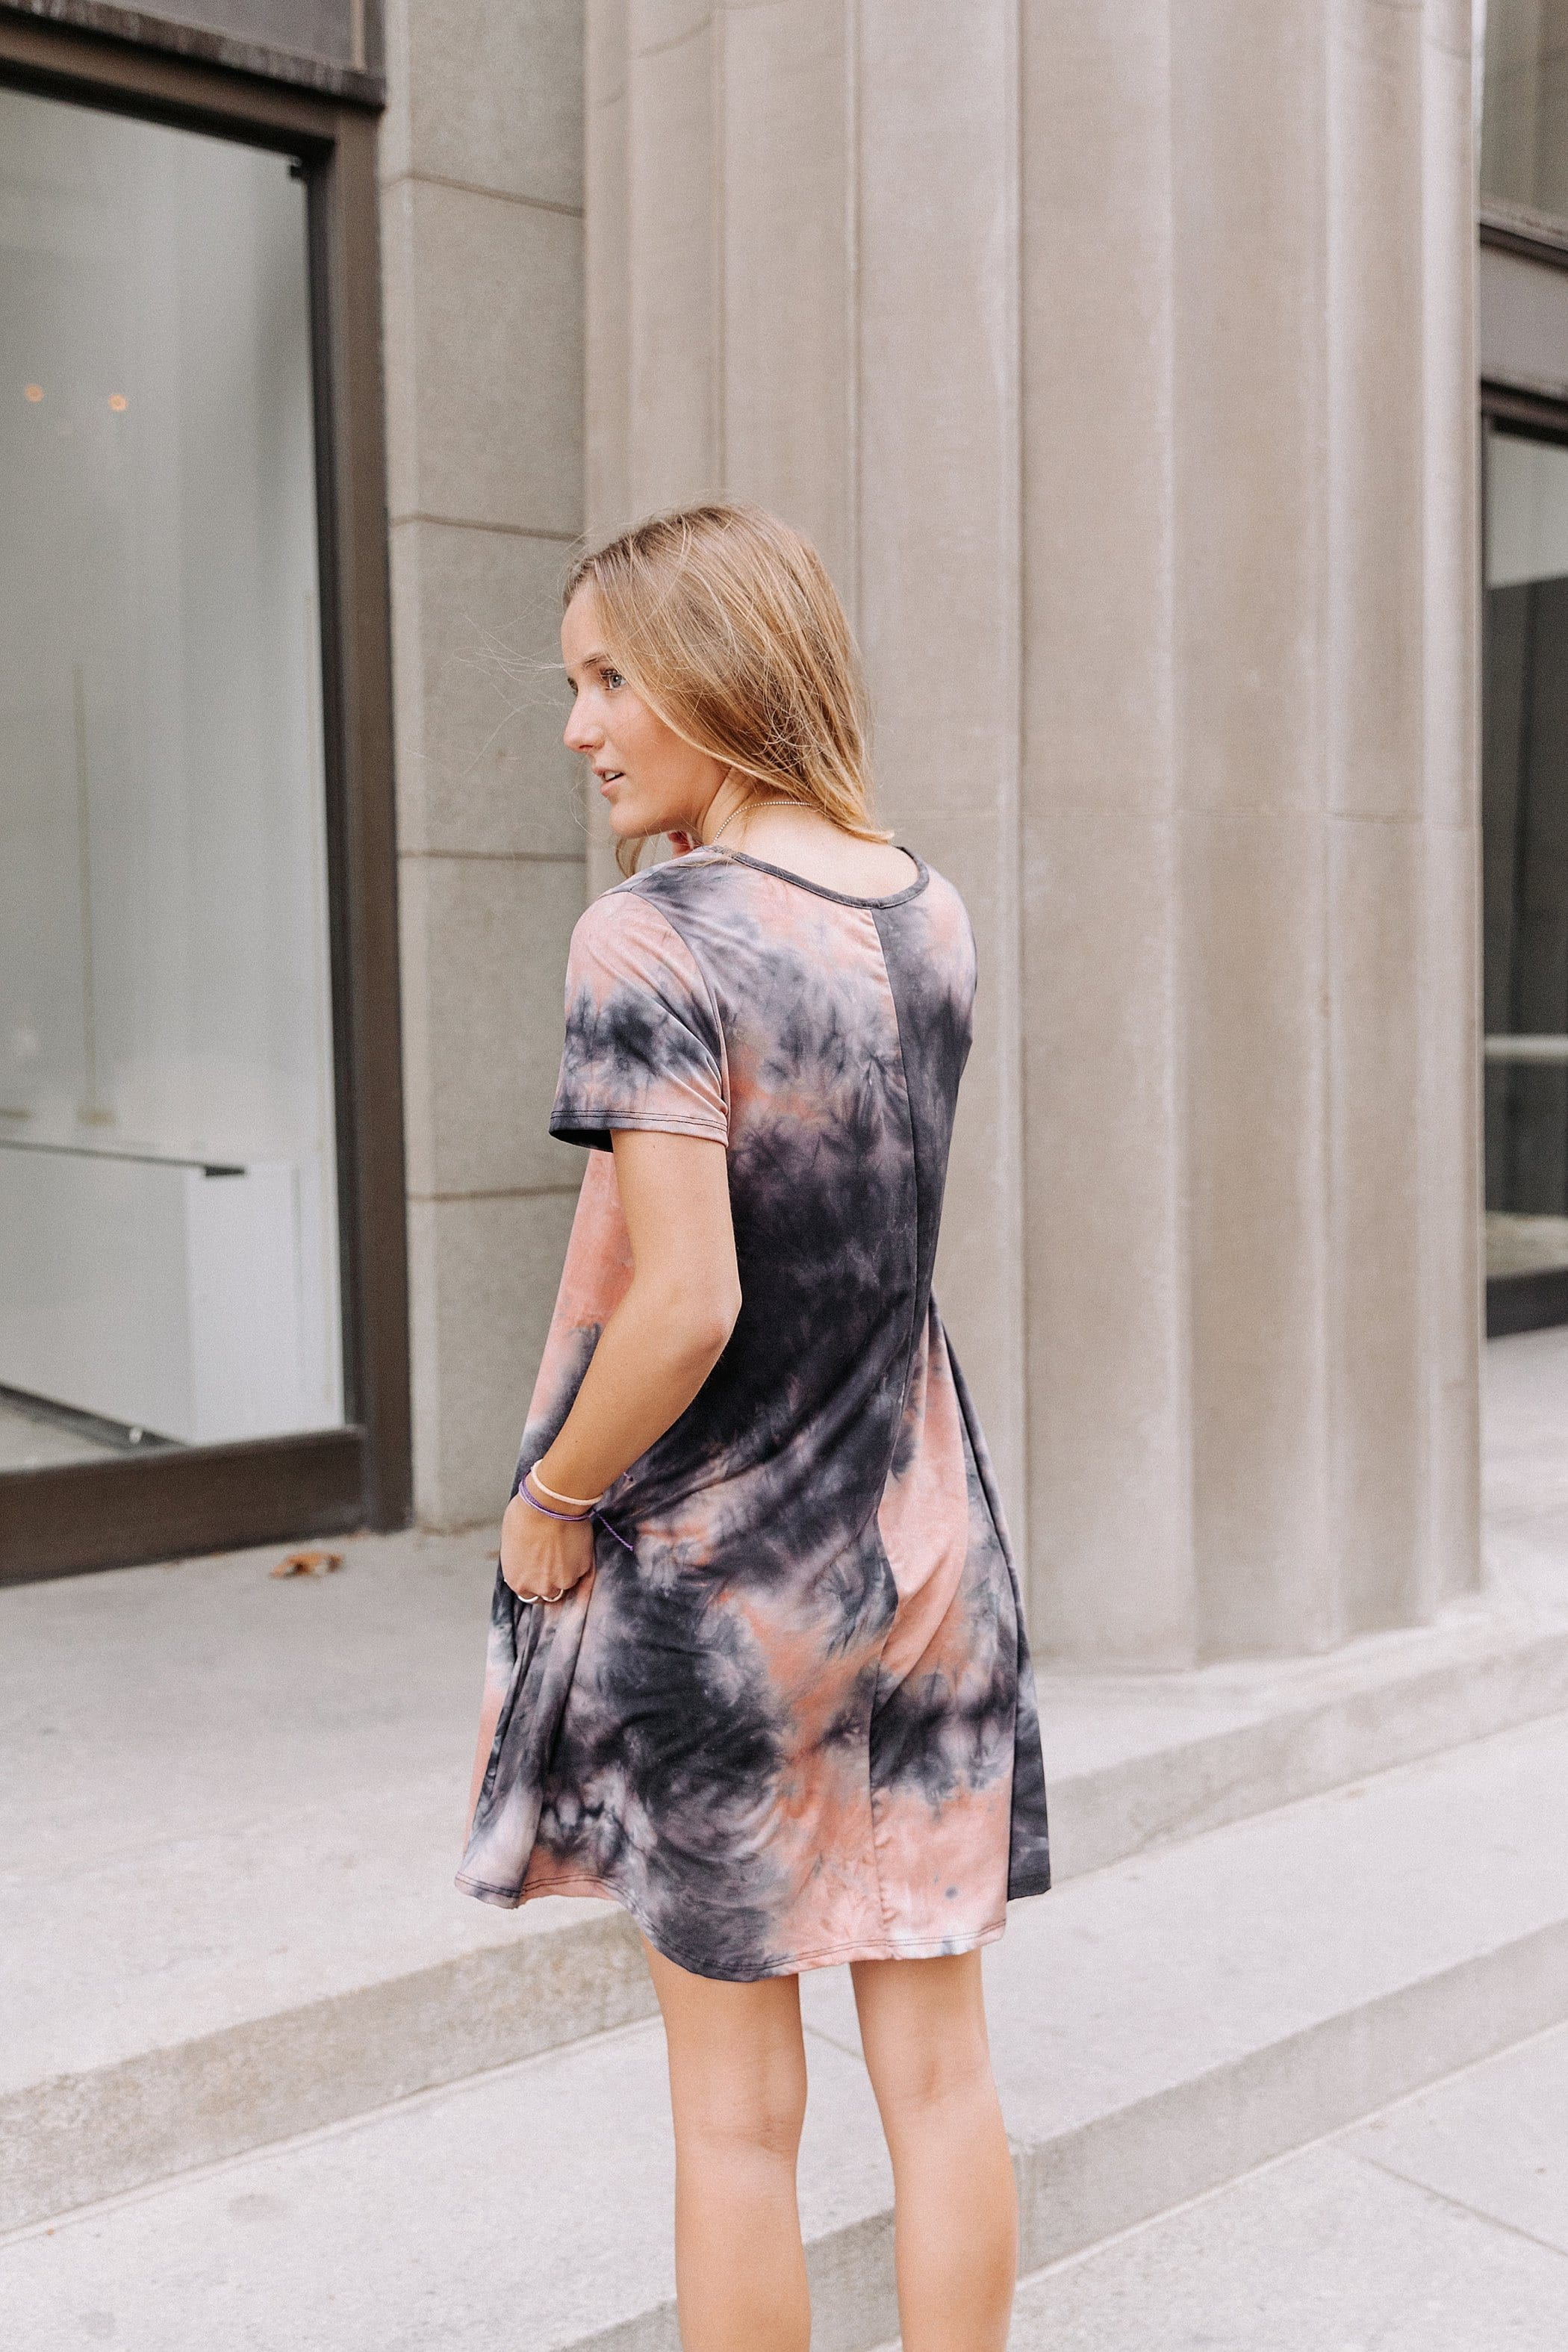 The Cayman Dress in Tie Dye